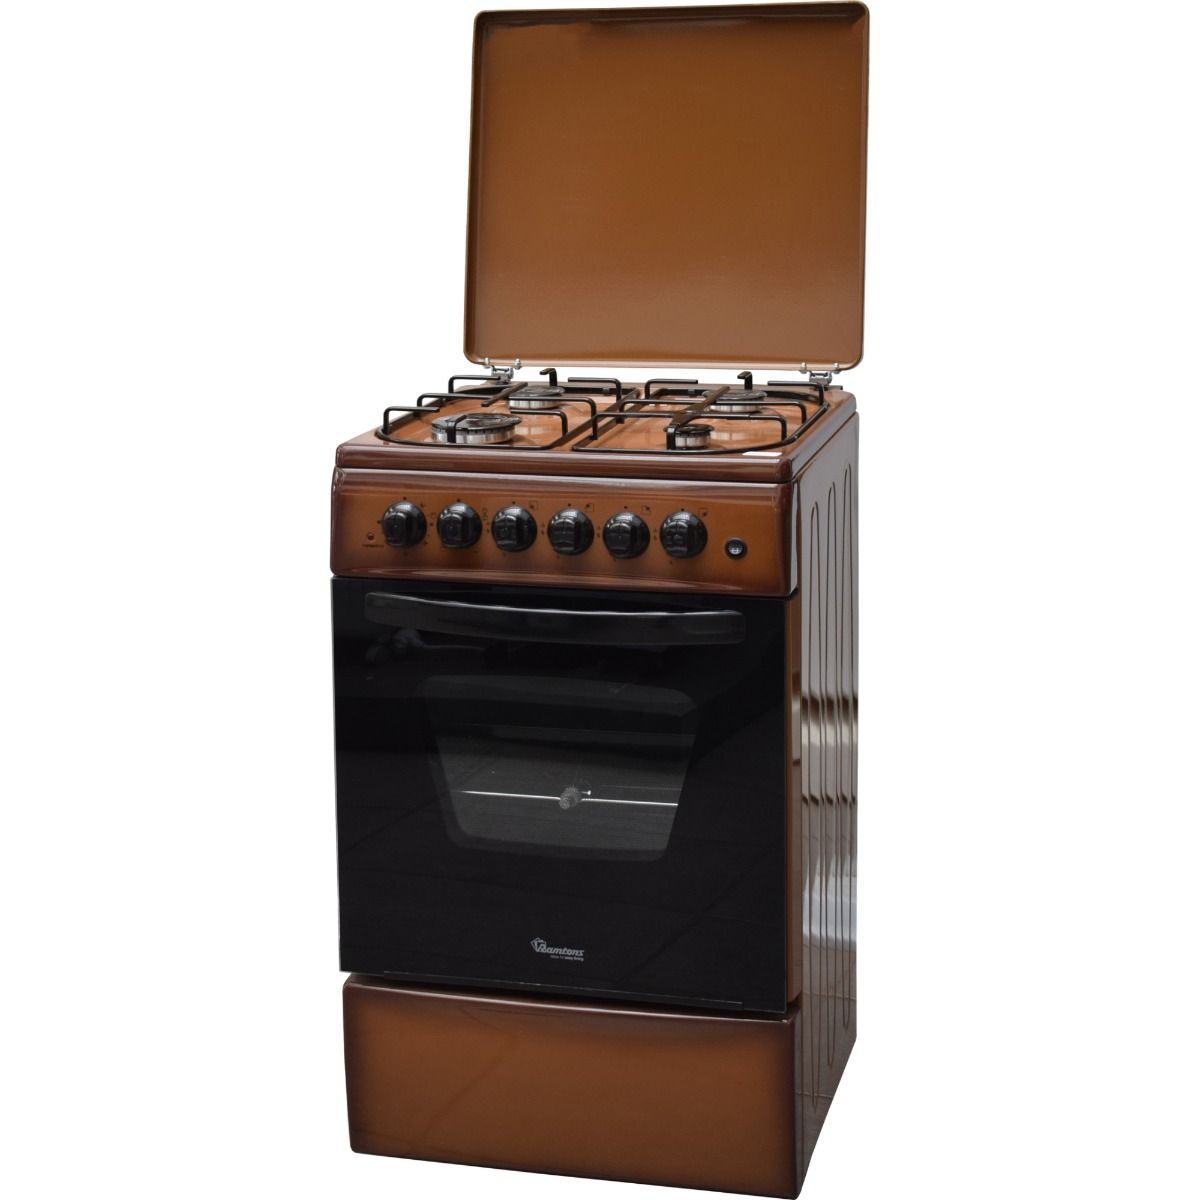 Ramtons Cooker RF/315 in Kenya 4GAS+ELECTRIC OVEN 50X50 BROWN COOKER